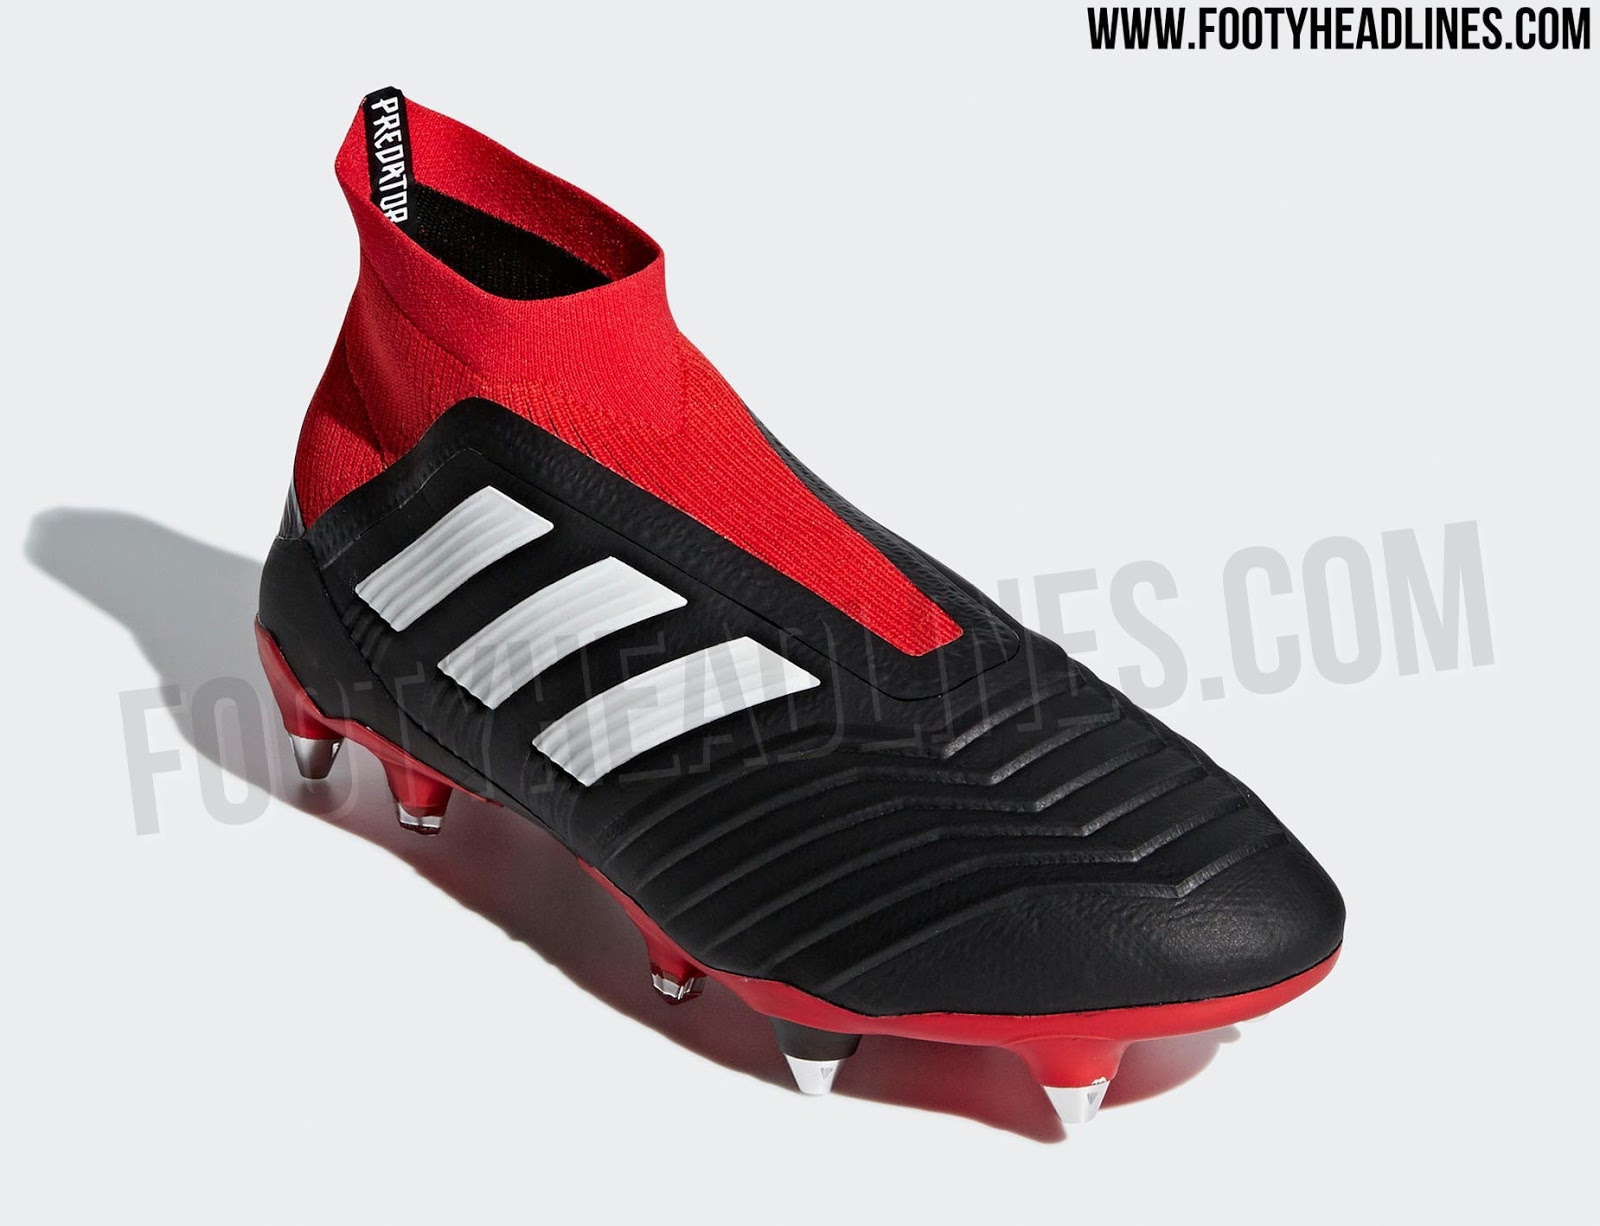 buy popular 7932c 66e80 Adidas has lined up a truly classic colorway for its Predator 18 football  boot model to kick off the 2018-2019 season in style. The trademark black, red  and ...